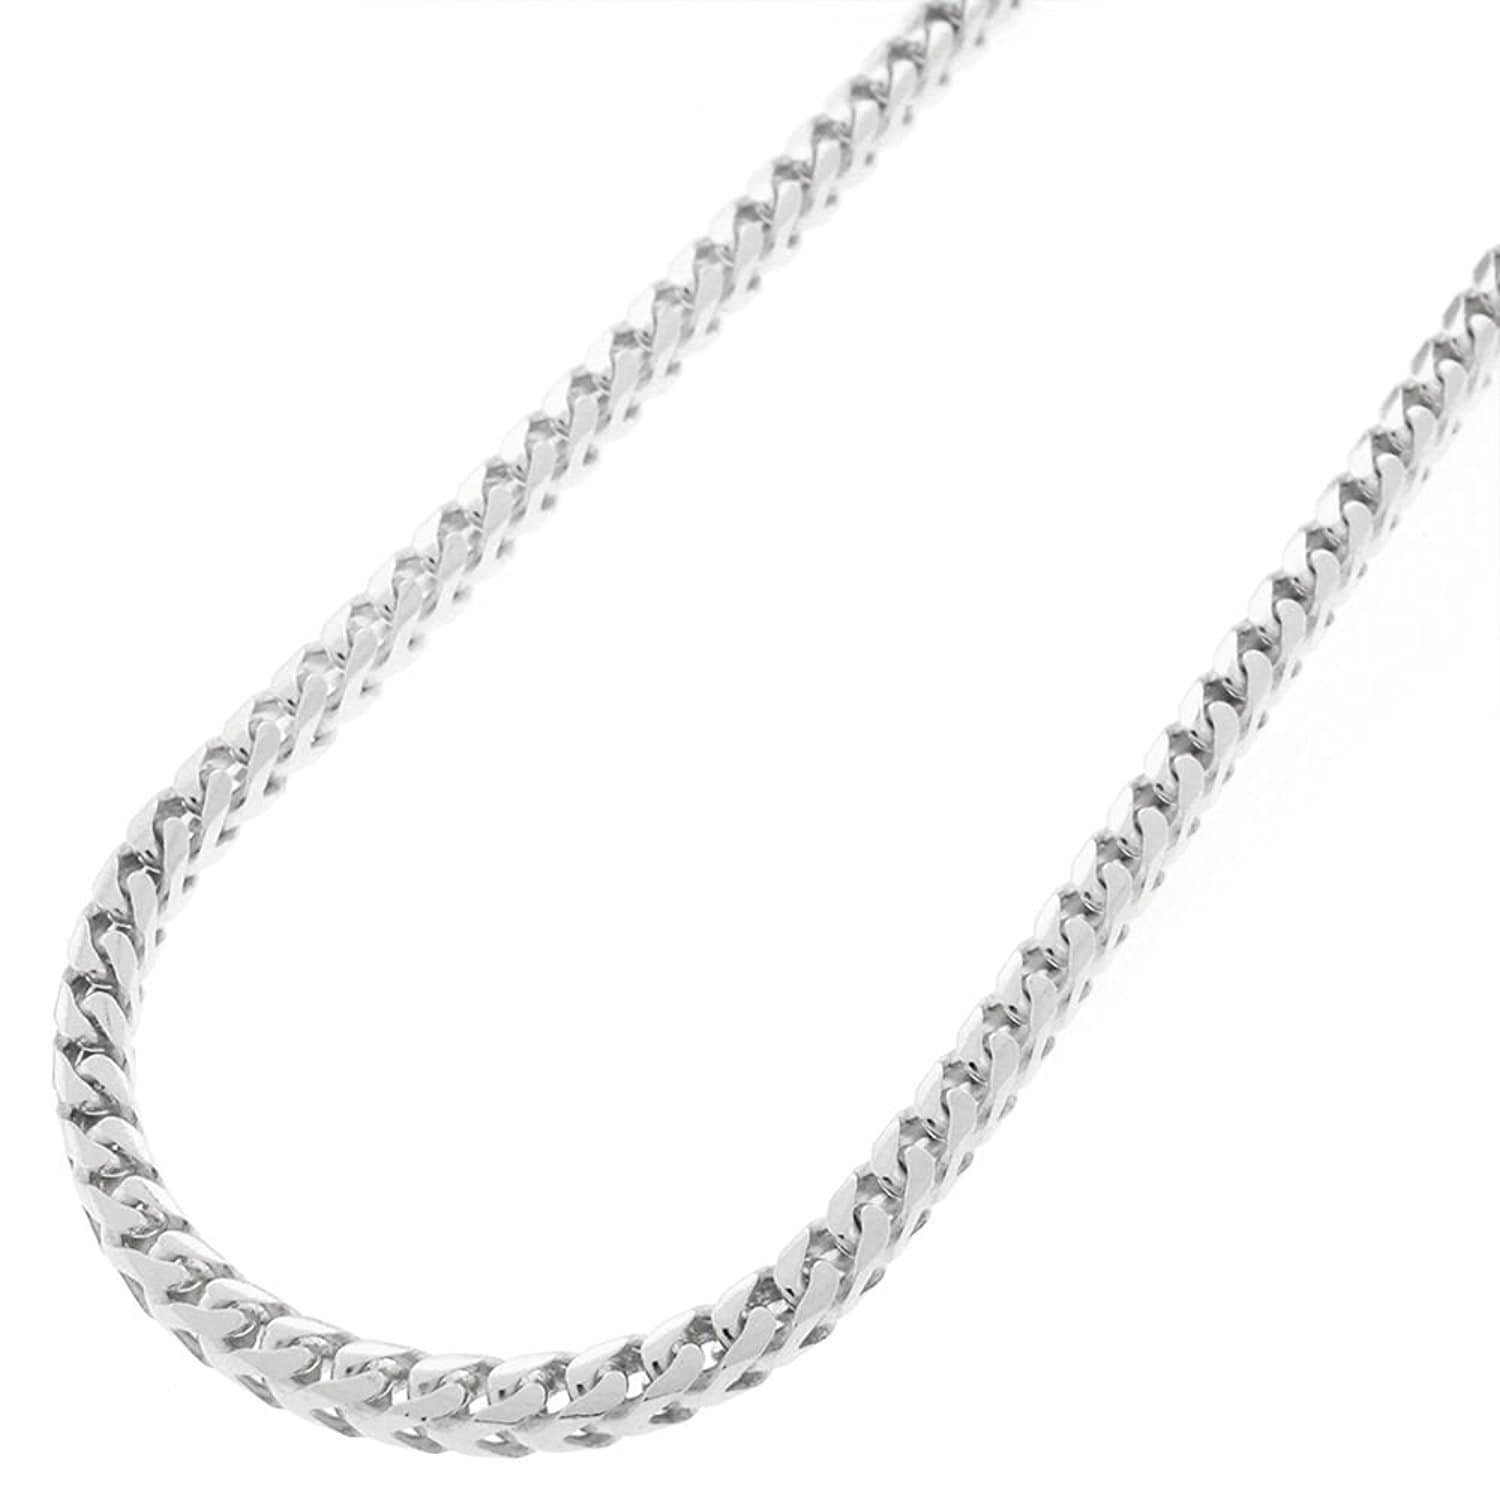 3mm Sterling Silver Curb Chain 16,18,20,22,24,30 inches Pure .925 Italian Chain